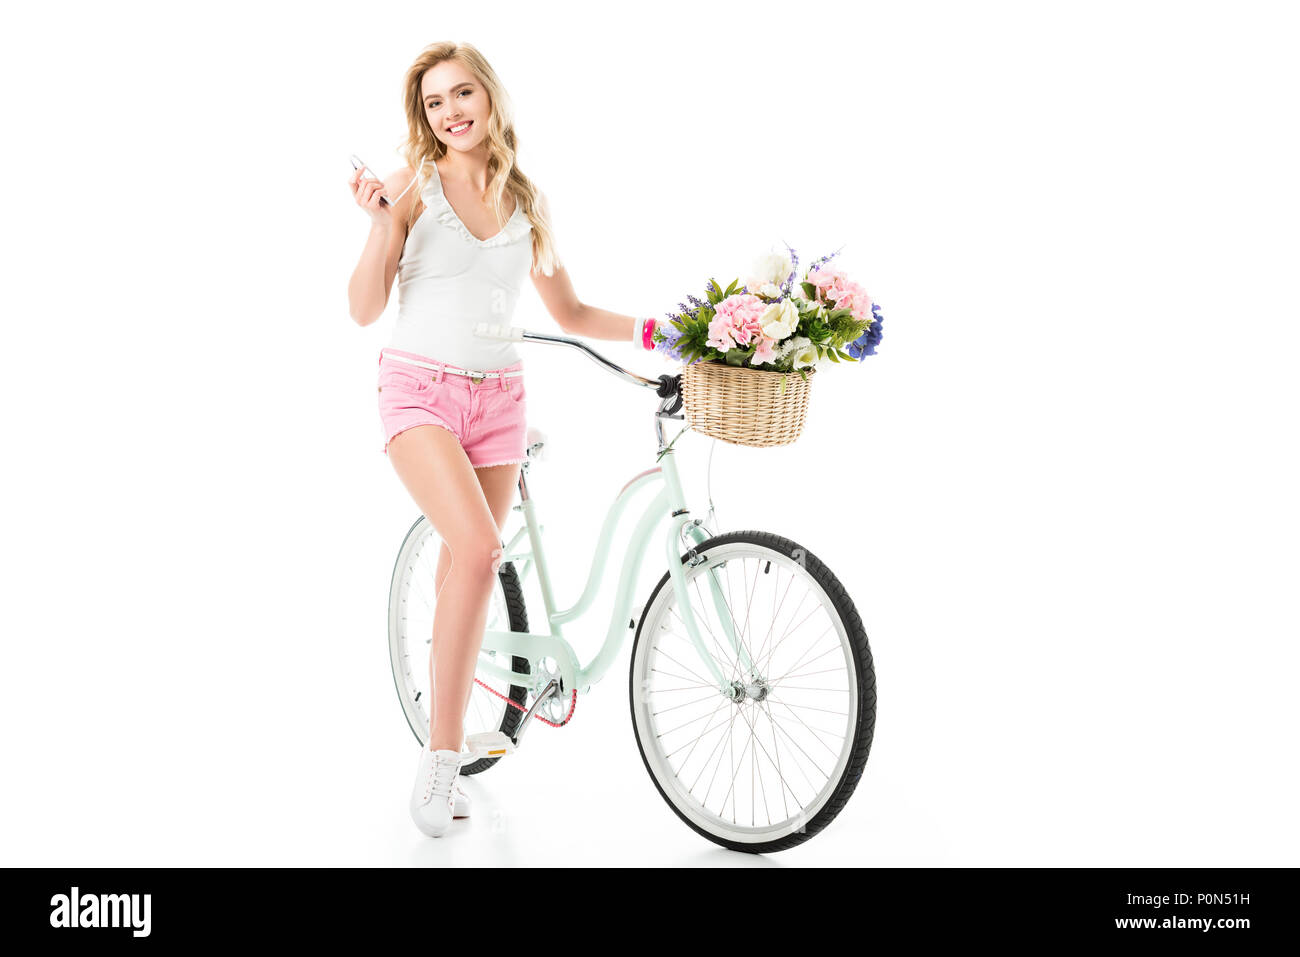 Blonde woman standing by bicycle with flowers in basket isolated on white - Stock Image